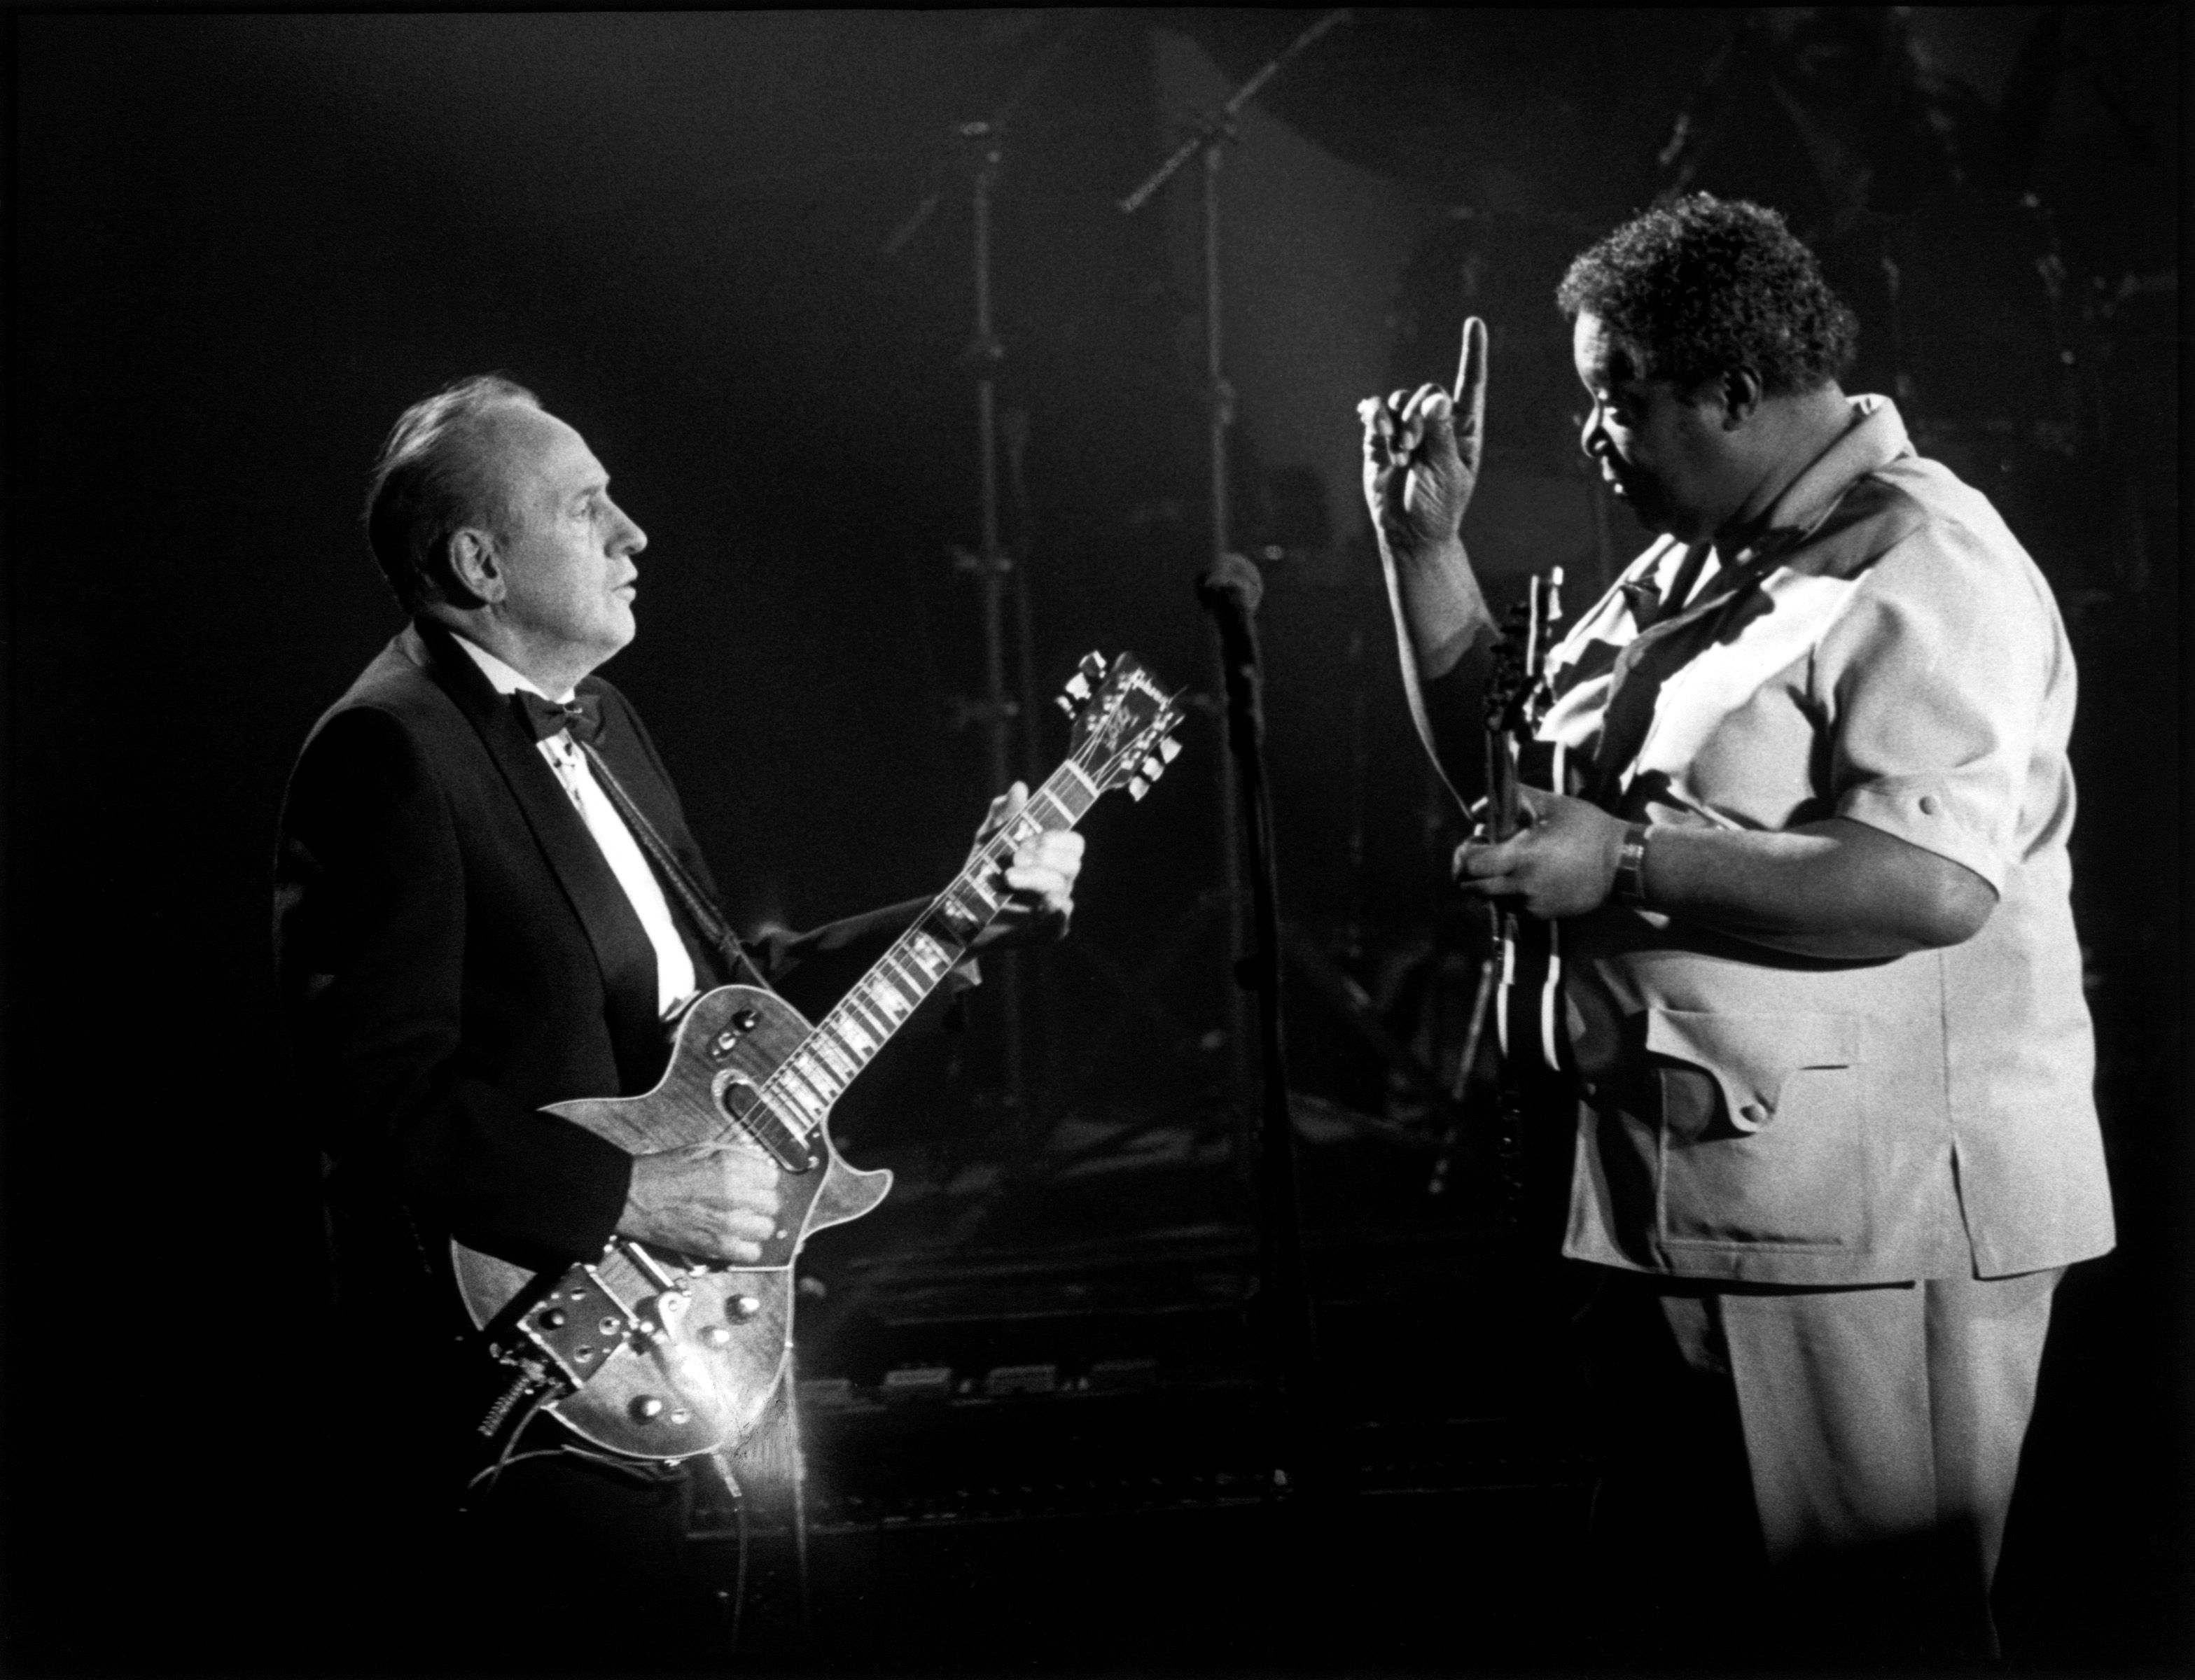 Paul was honored at a 1988 tribute concert by guitar titans like B.B. King, above.